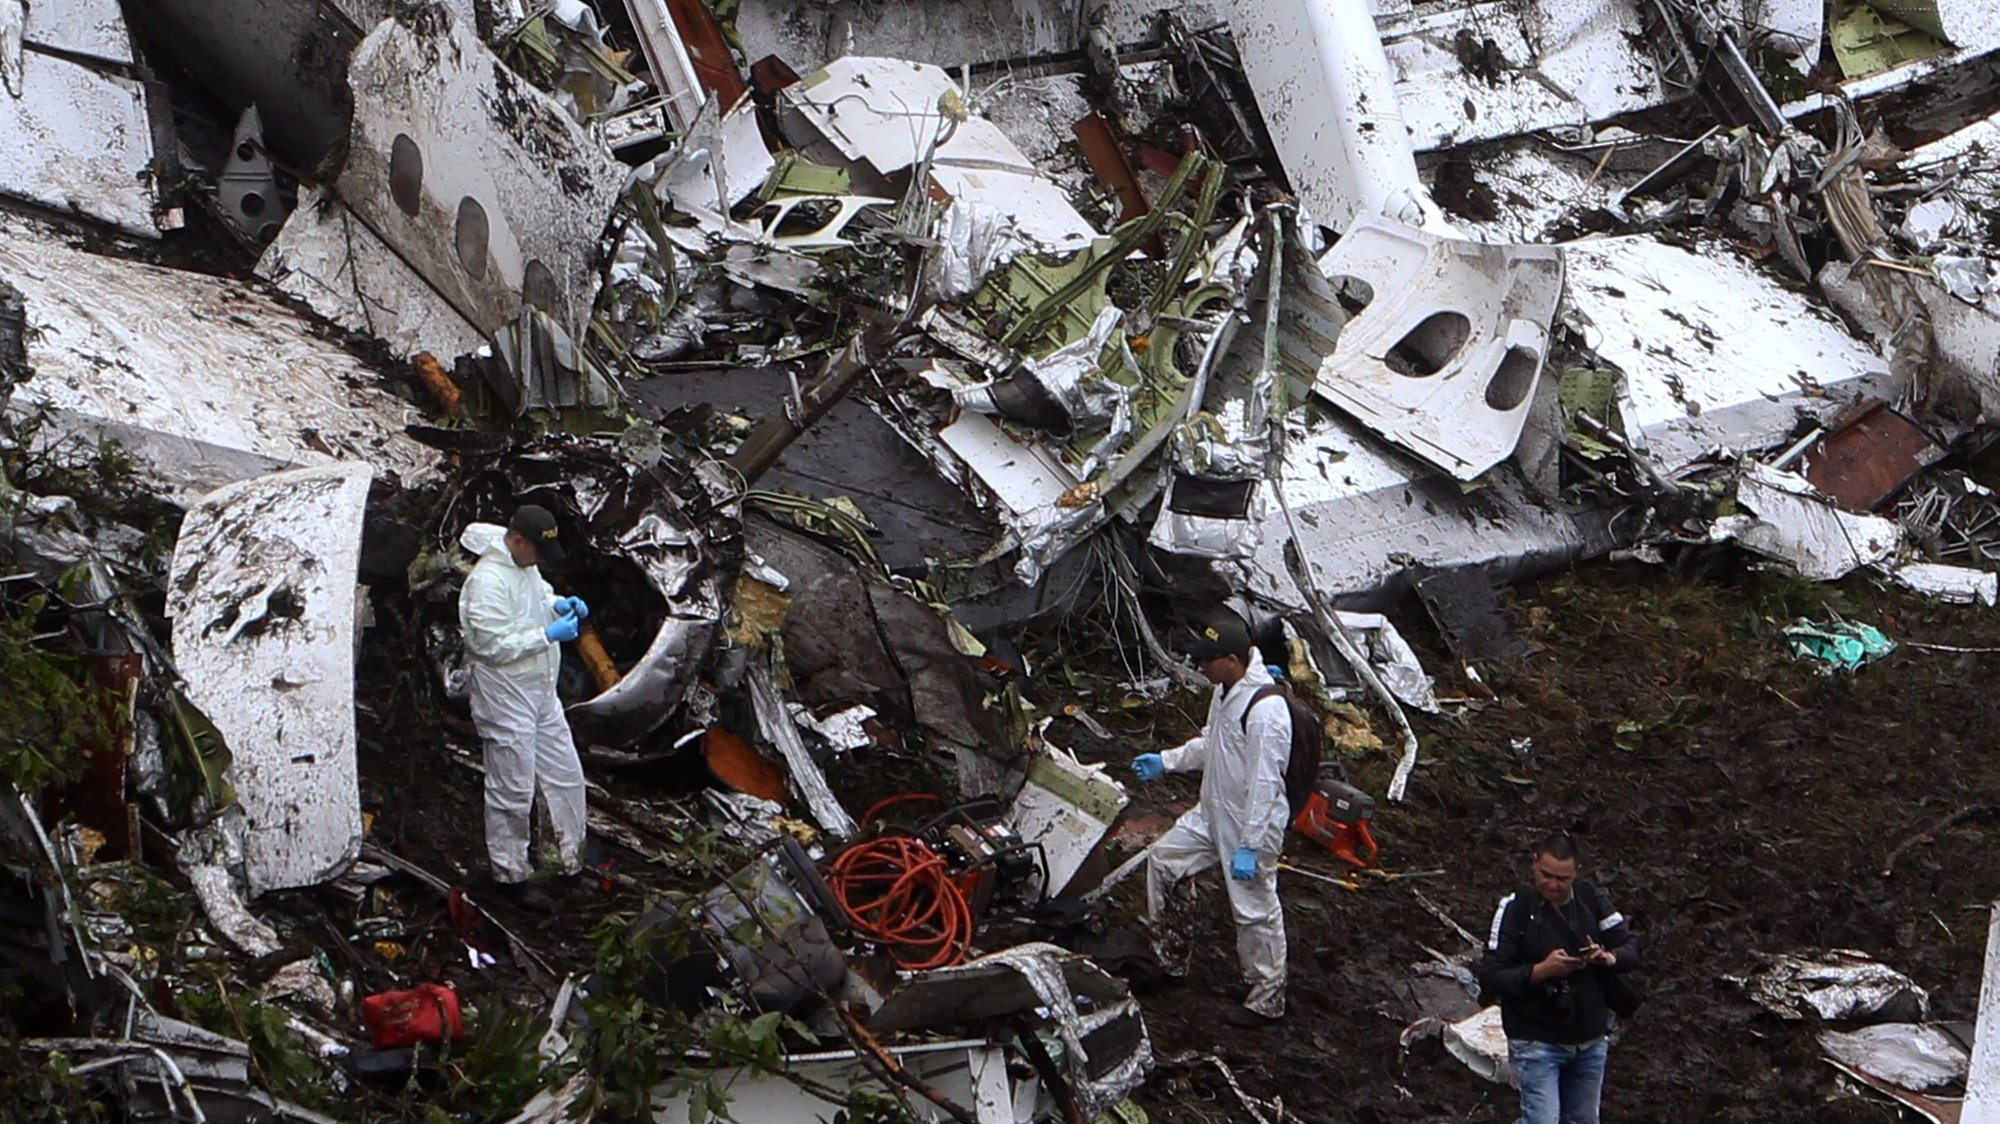 epaselect epa05652352 Rescue workers work at the scene of the plane crash in the municipality of La Union, Department of Antioquia, Colombia, 29 November 2016. According to reports, 75 people died when an aircraft crashed late 28 November 2016 with 81 people on board, including players of the Brazilian soccer club Chapecoense. The plane crashed in a mountainous area outside Medellin, Colombia as it was approaching the Jose Maria Cordoba airport. The cause of the incident is as yet uknown. Chapecoense were scheduled to play in the Copa Sudamericana final against Medellin's Atletico Nacional on 30 November 2016.  EPA/LUIS EDUARDO NORIEGA A.